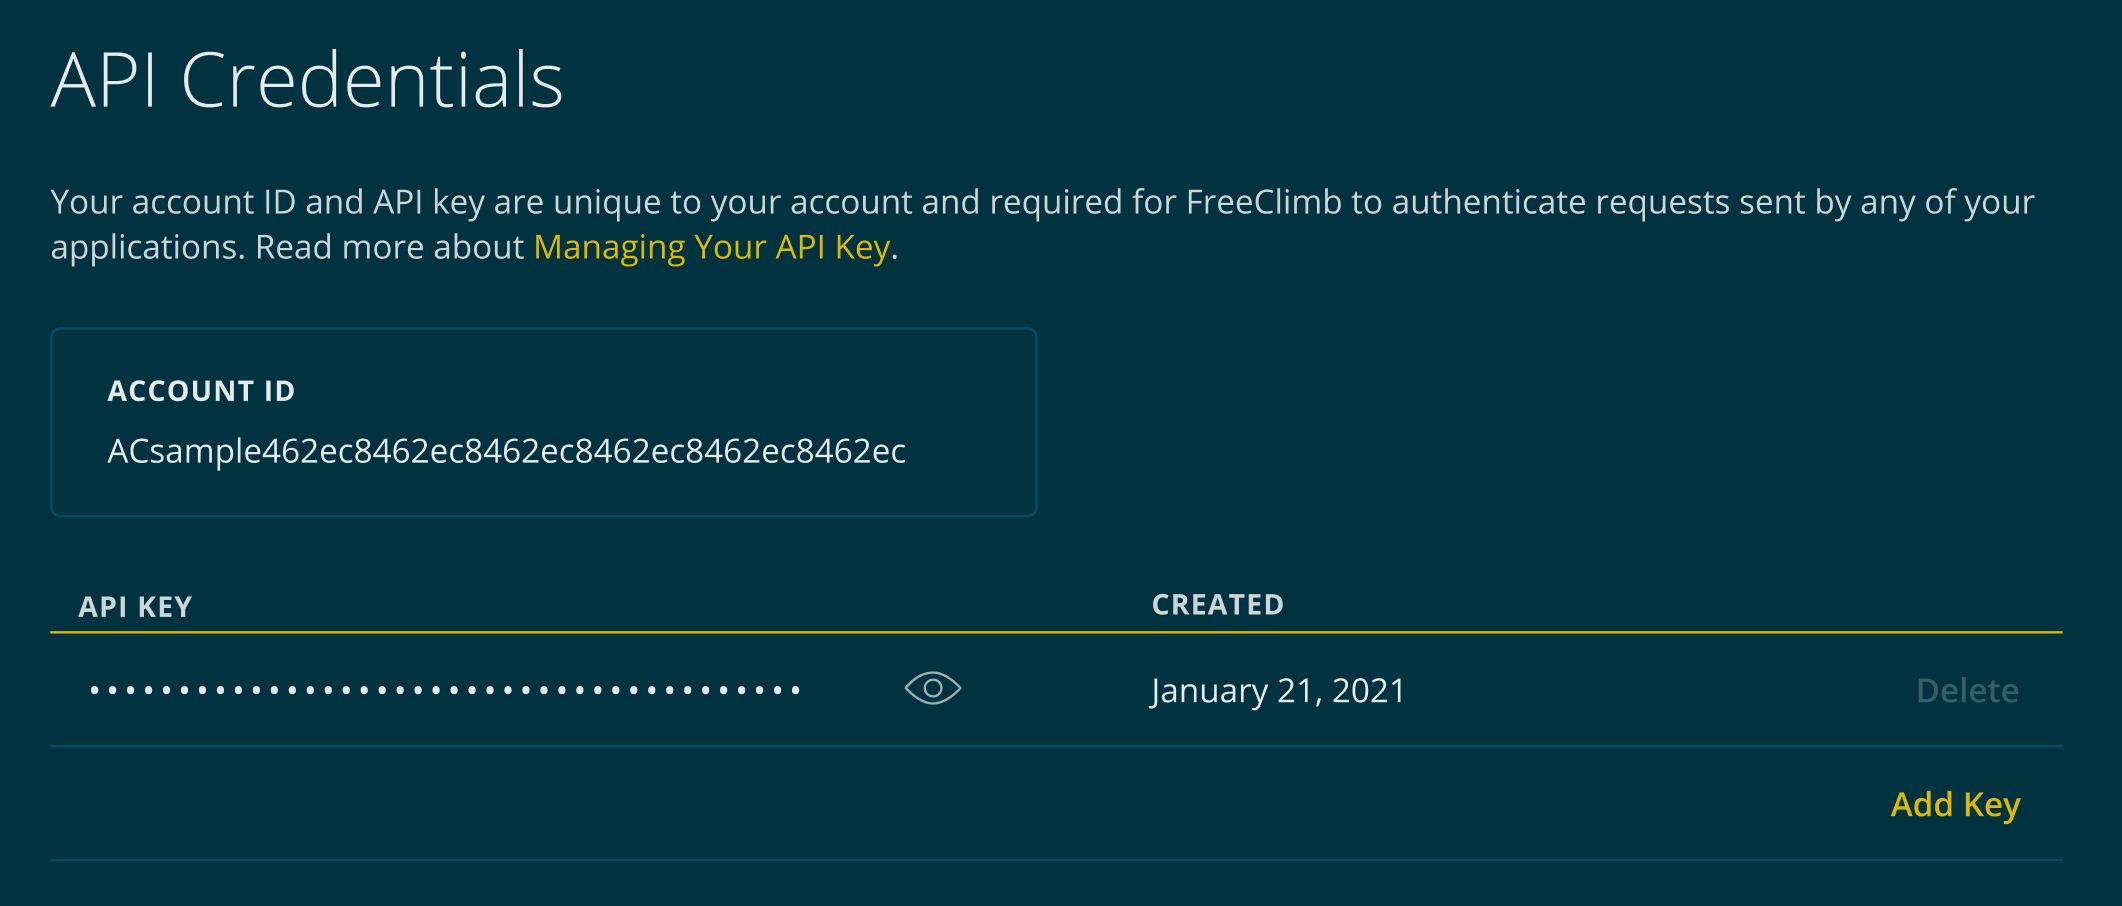 The API credentials page contains both your account ID and API key(s)